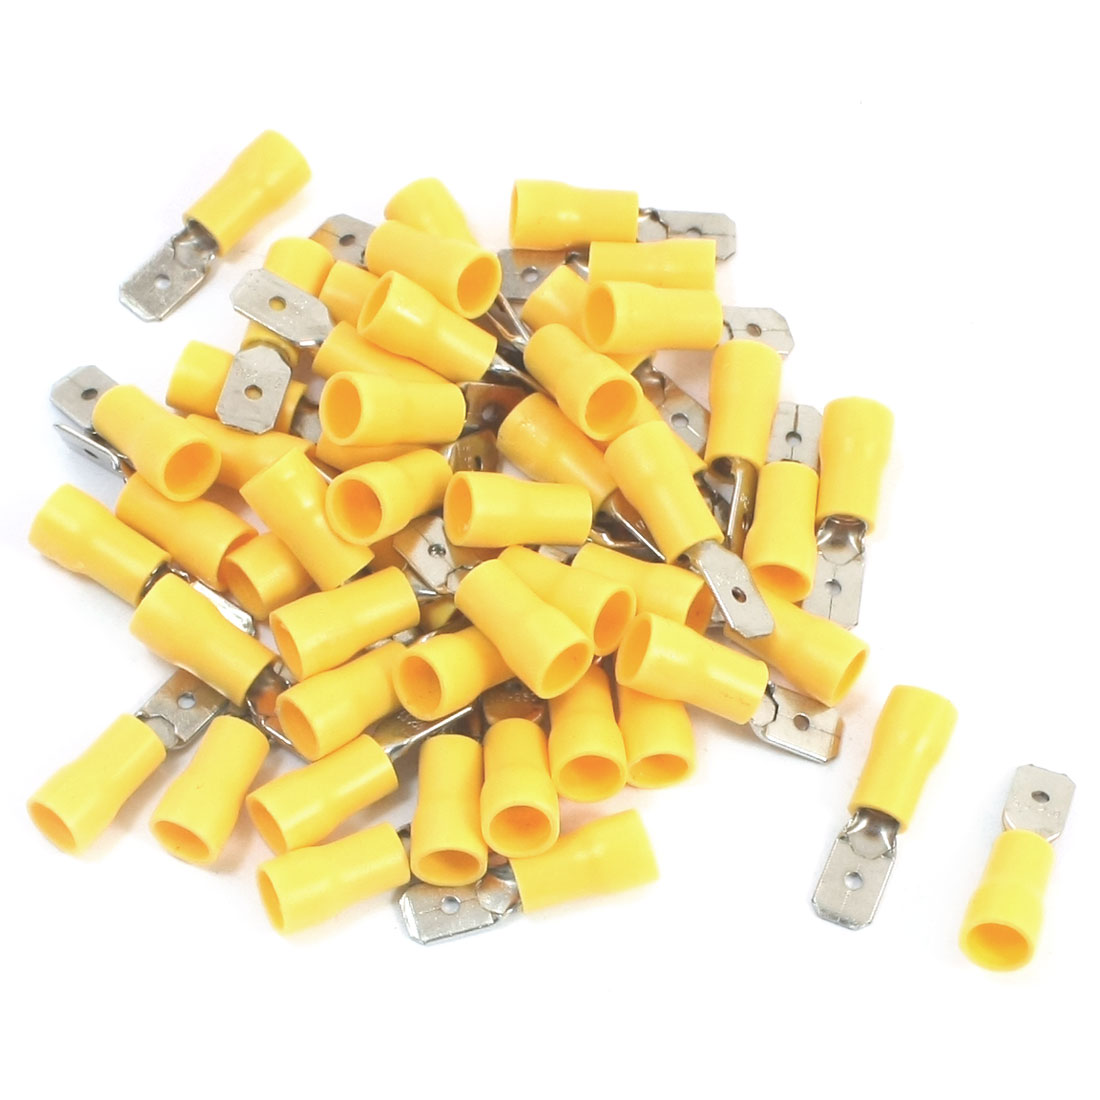 50Pcs 12-10 AWG MDD5-250 Yellow PVC Sleeve Insulated Cable Terminals Crimp